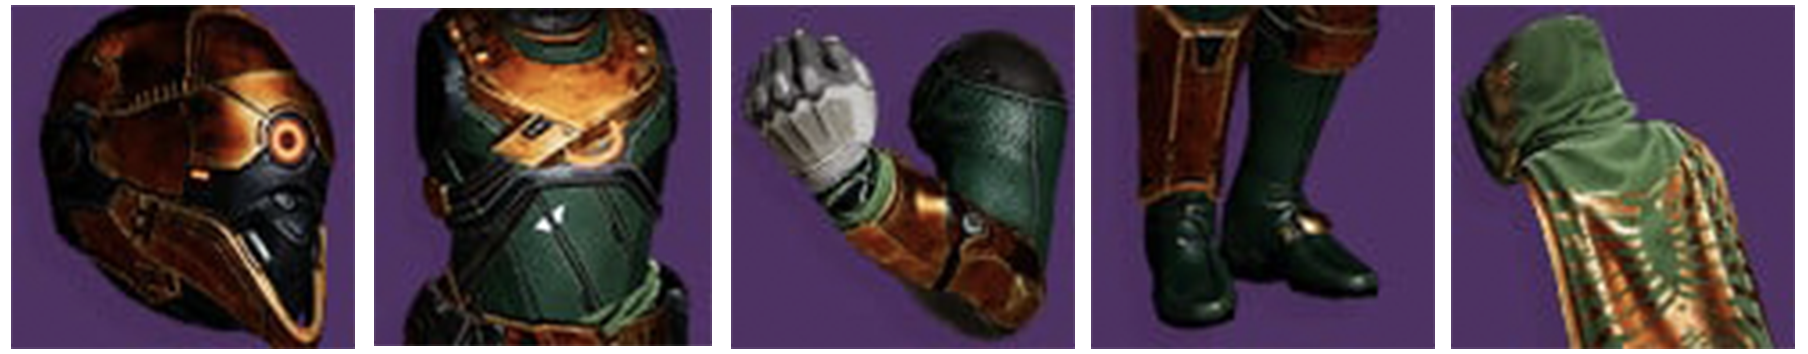 HUNTER LEGACY'S OATH ARMOR SET - Vault of Glass Carries